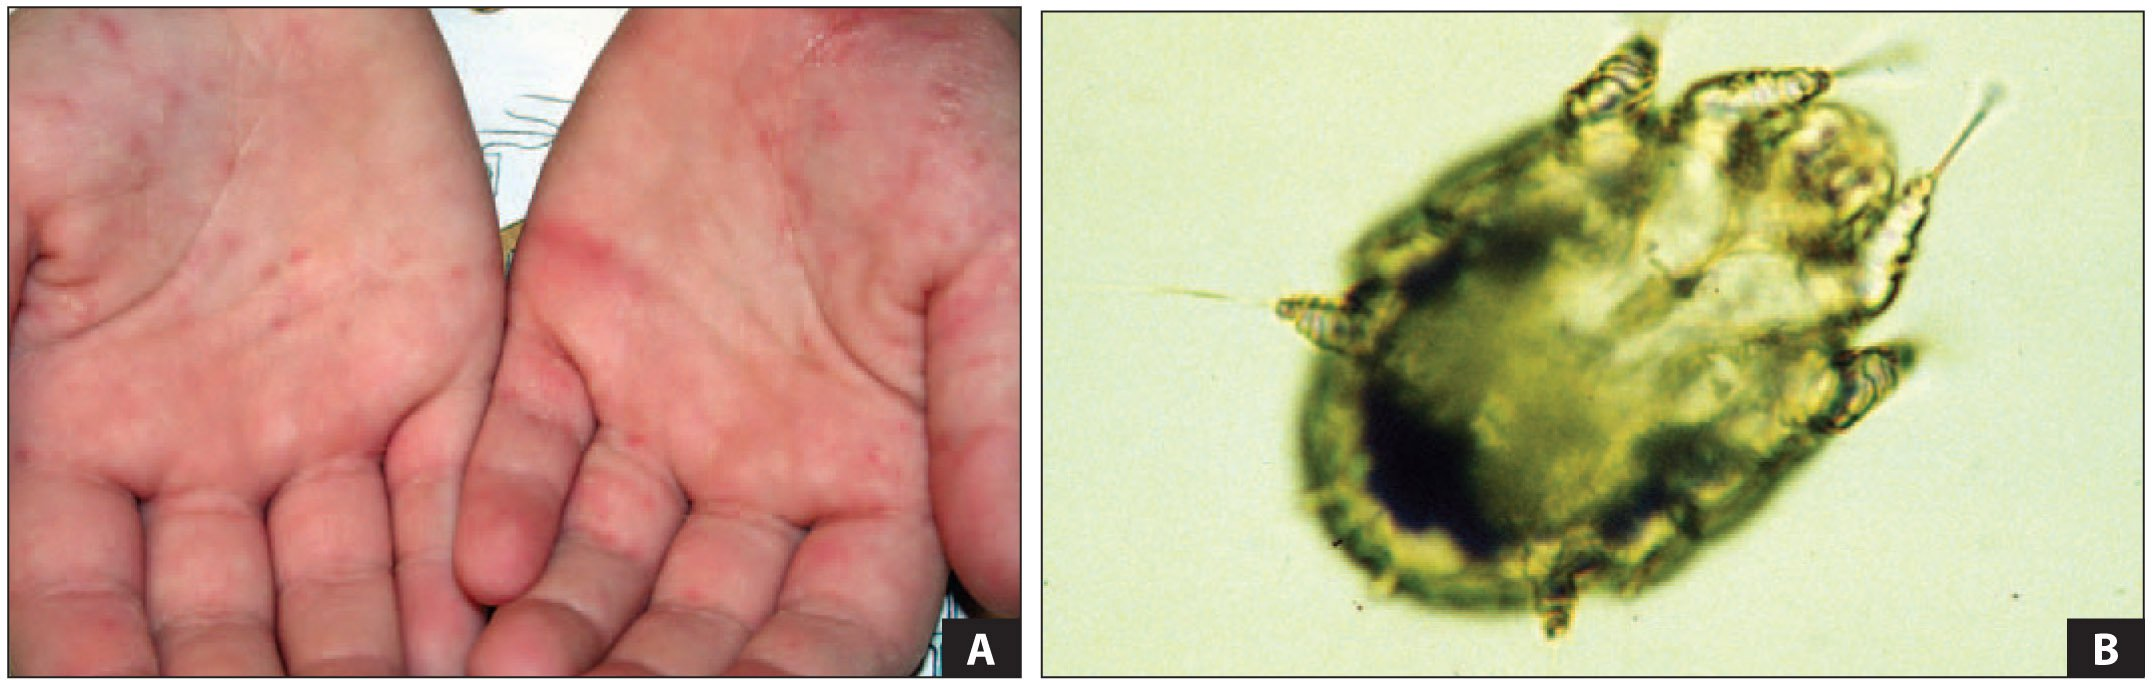 A. Scabies with Burrows in an Adult Patient. B. Scabies Mite (larva) Seen from Oil Preparation of Skin Scraping.